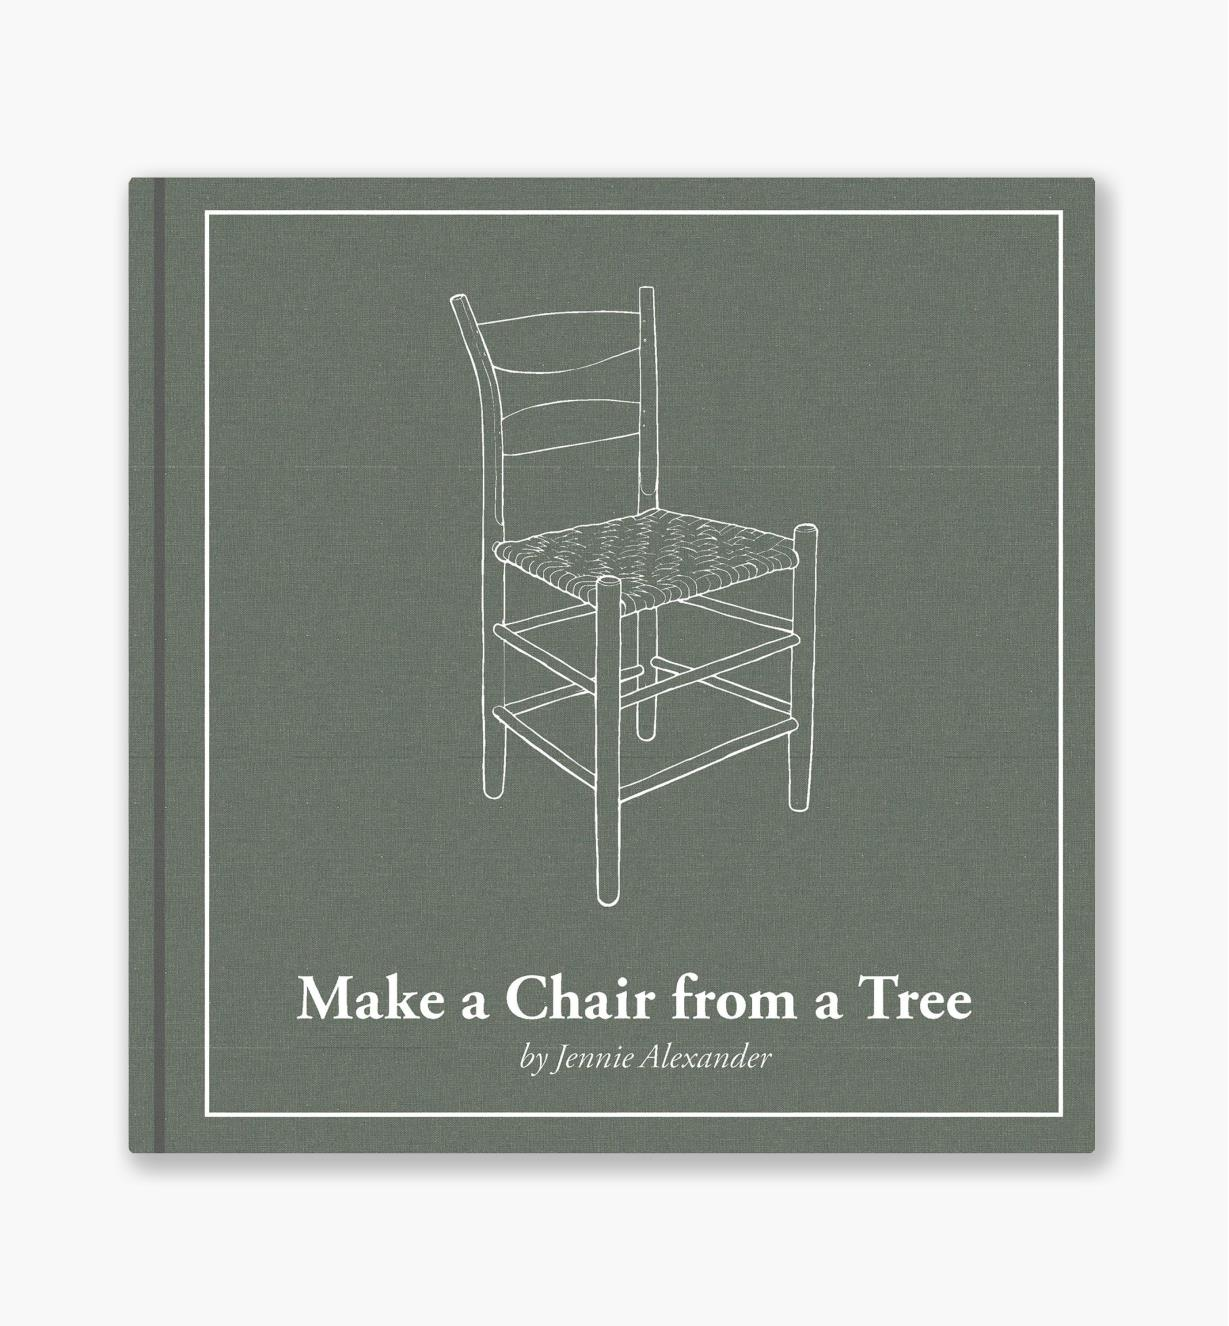 20L0377 - Make a Chair from a Tree, Third Edition